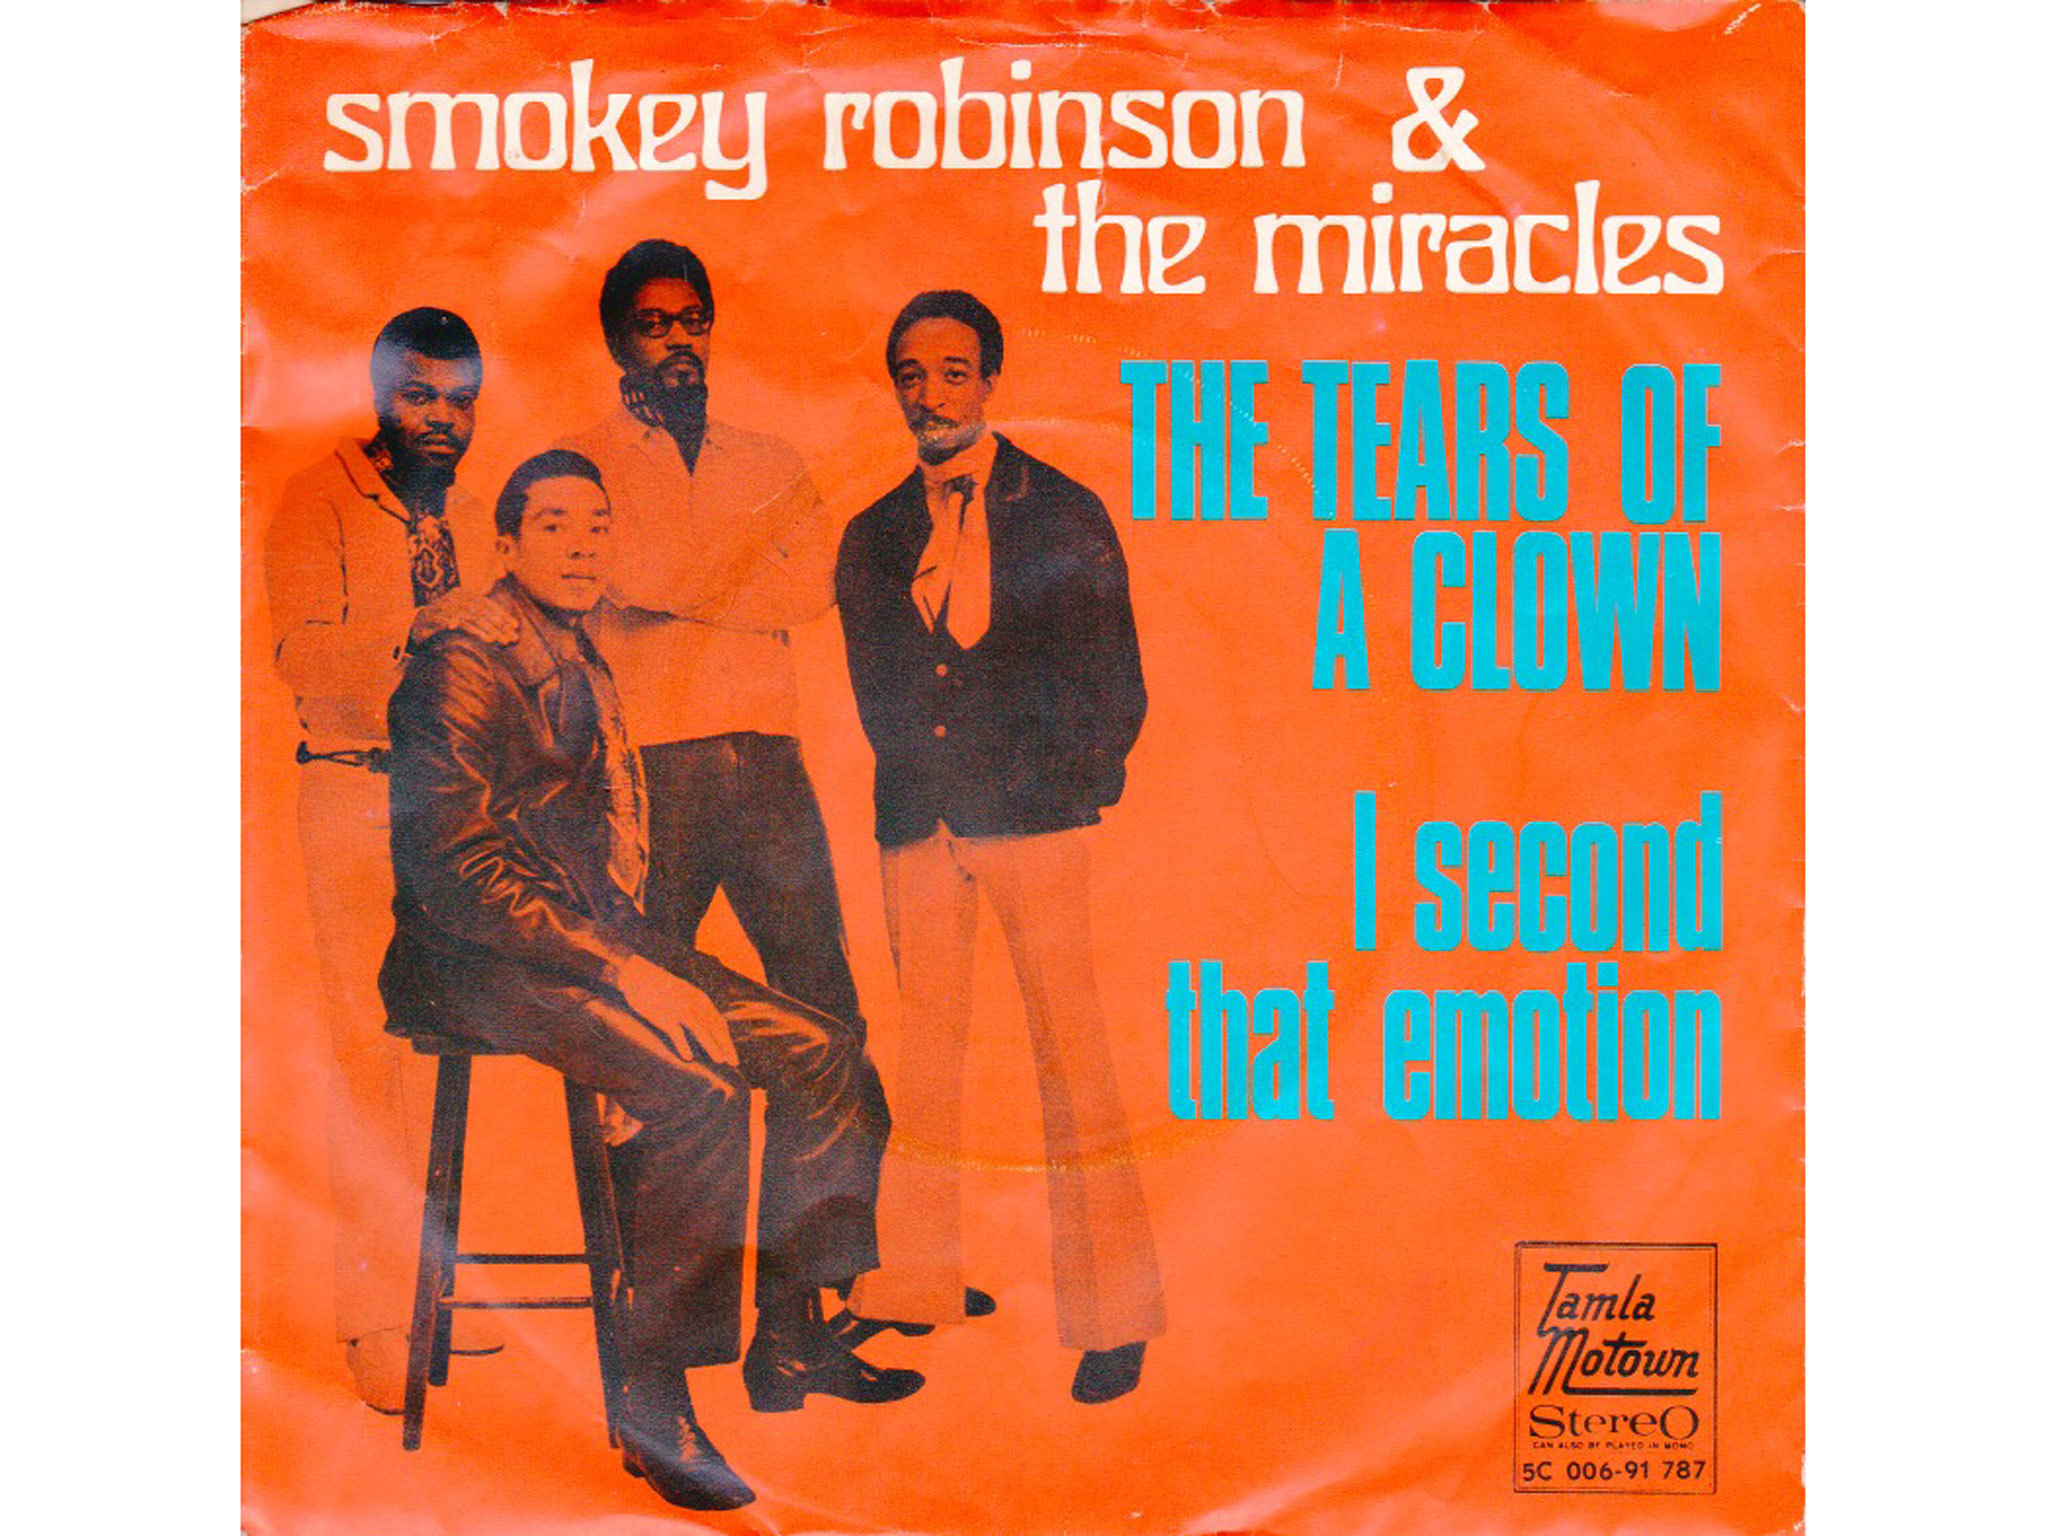 Smokey Robinson and the Miracles, I second that emotion, best soul songs